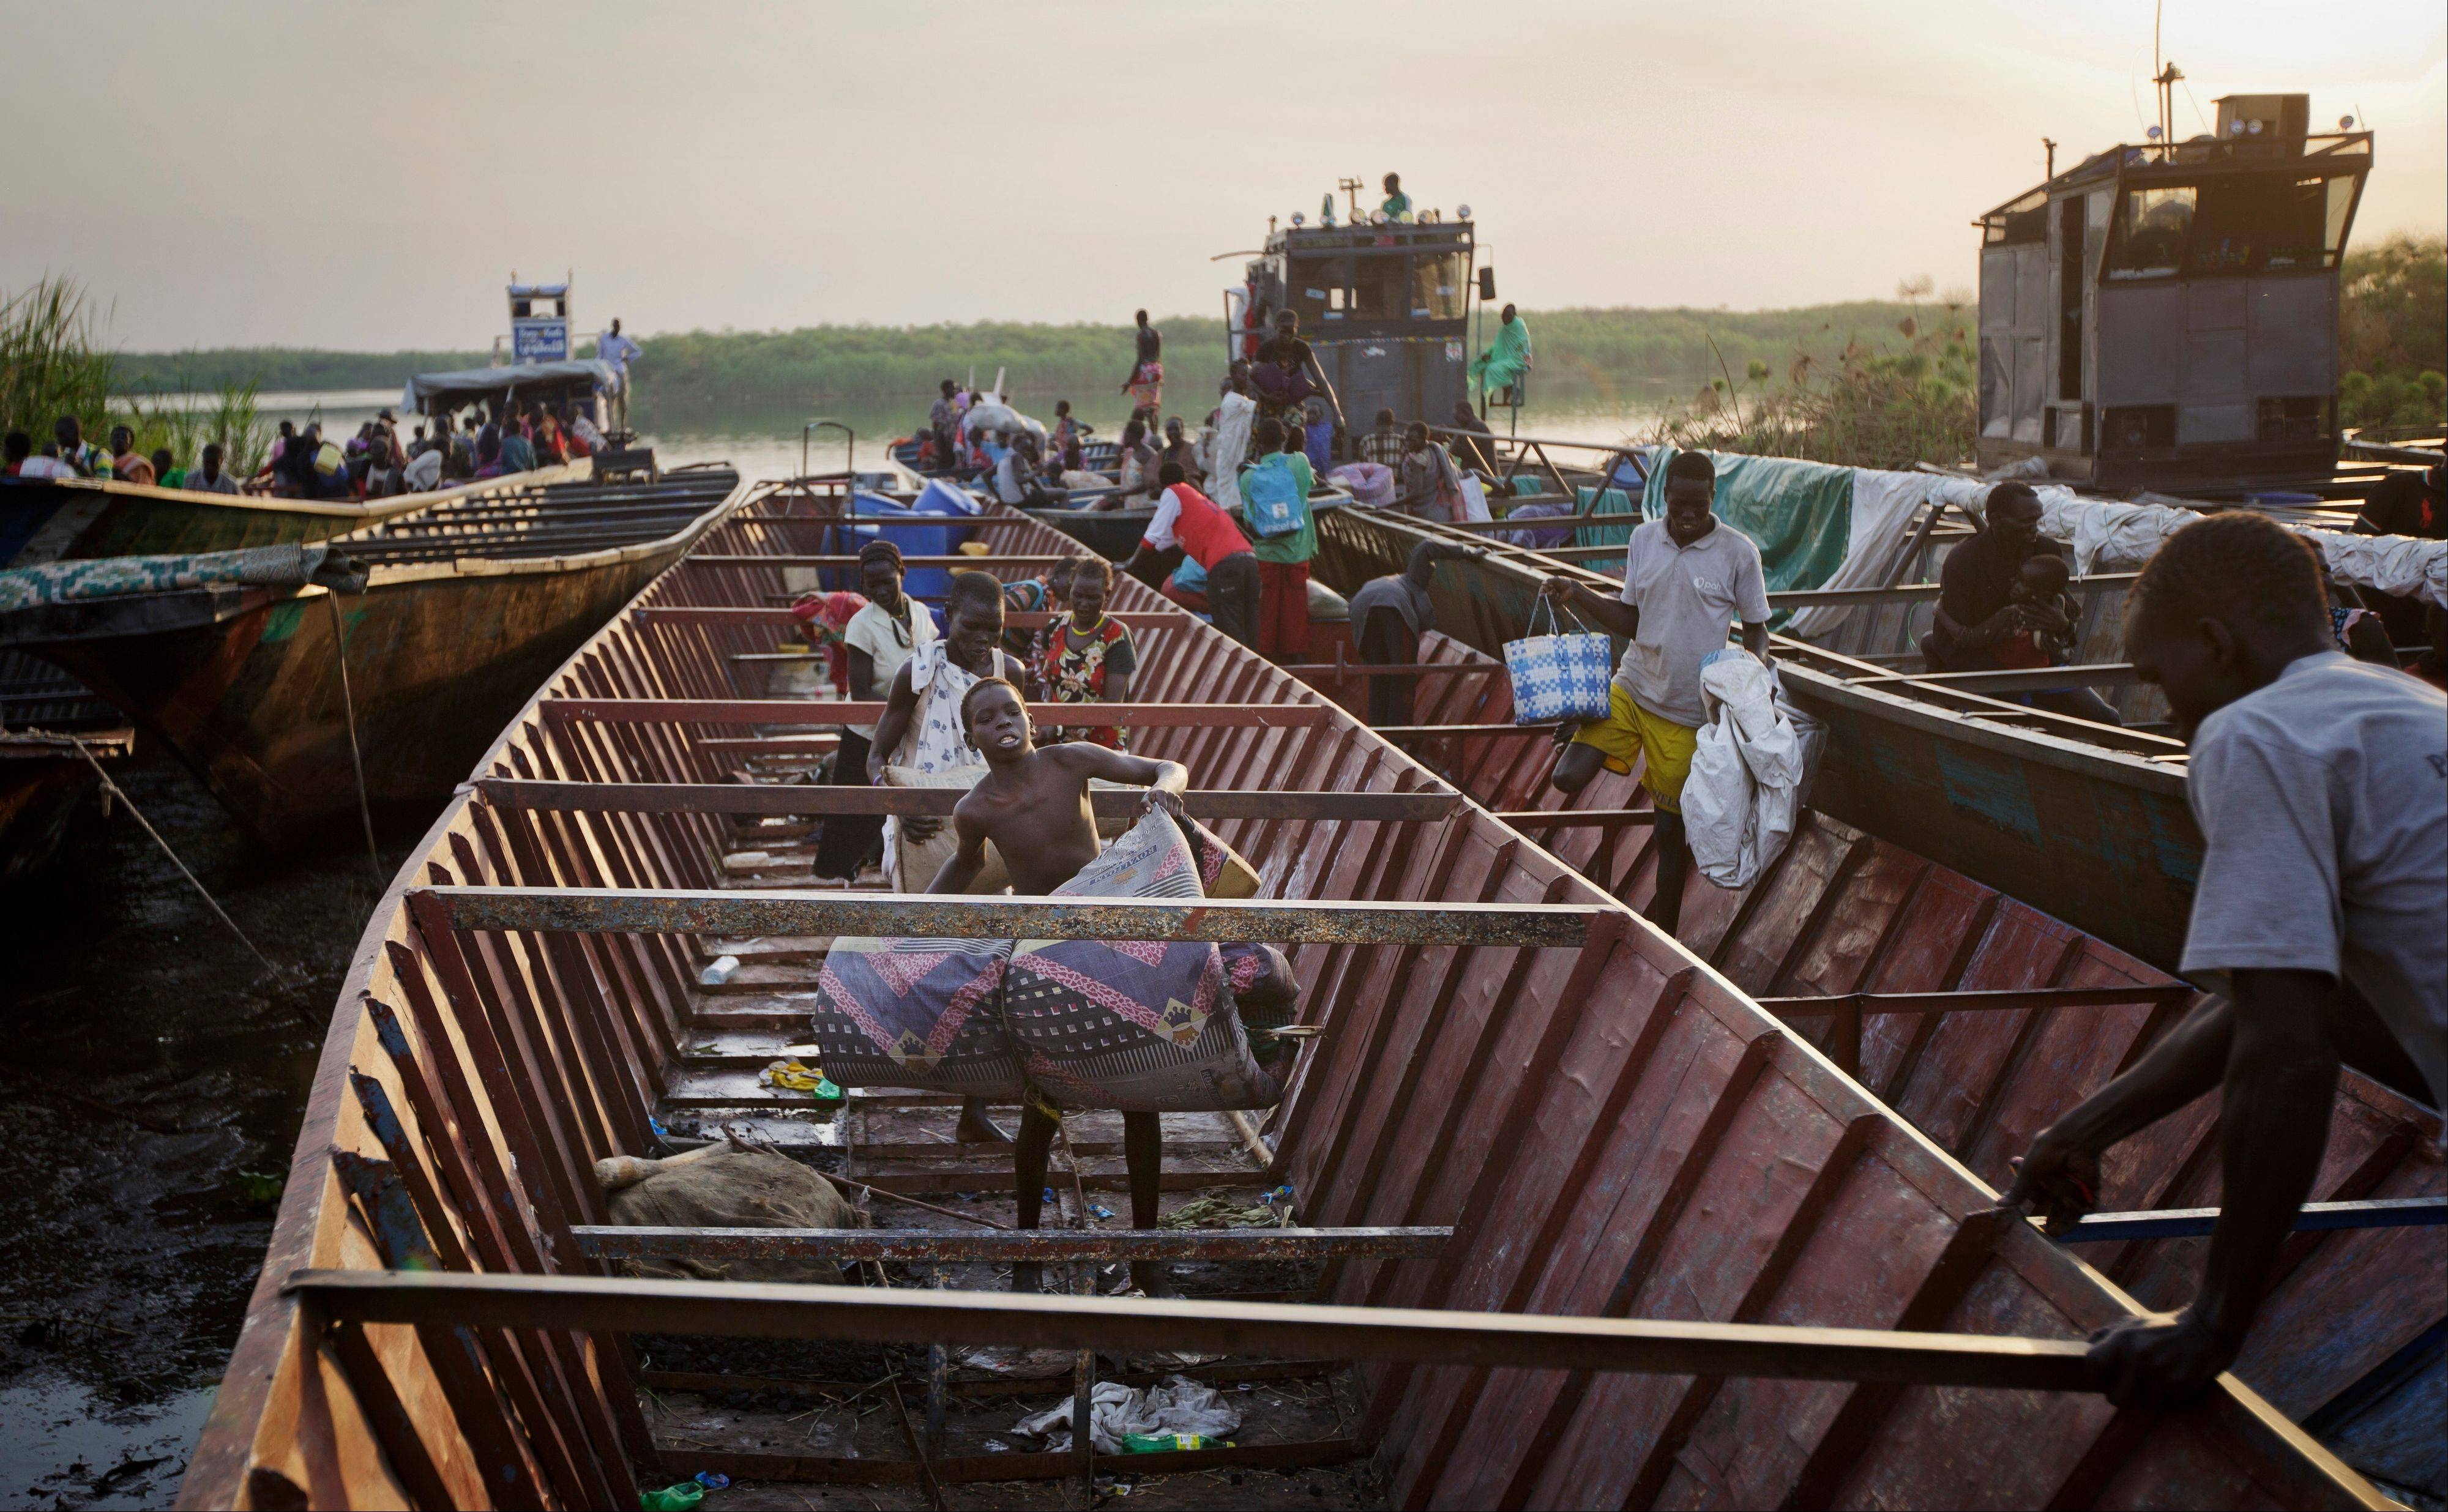 Displaced people arrive by river barge from Bor, some of the thousands who fled the recent fighting between government and rebel forces in Bor by boat across the White Nile. A military spokesman in South Sudan said that 200 people fleeing warfare elsewhere in the country died after a boat that was carrying mostly women and children sank while crossing the Nile River in Upper Nile State.